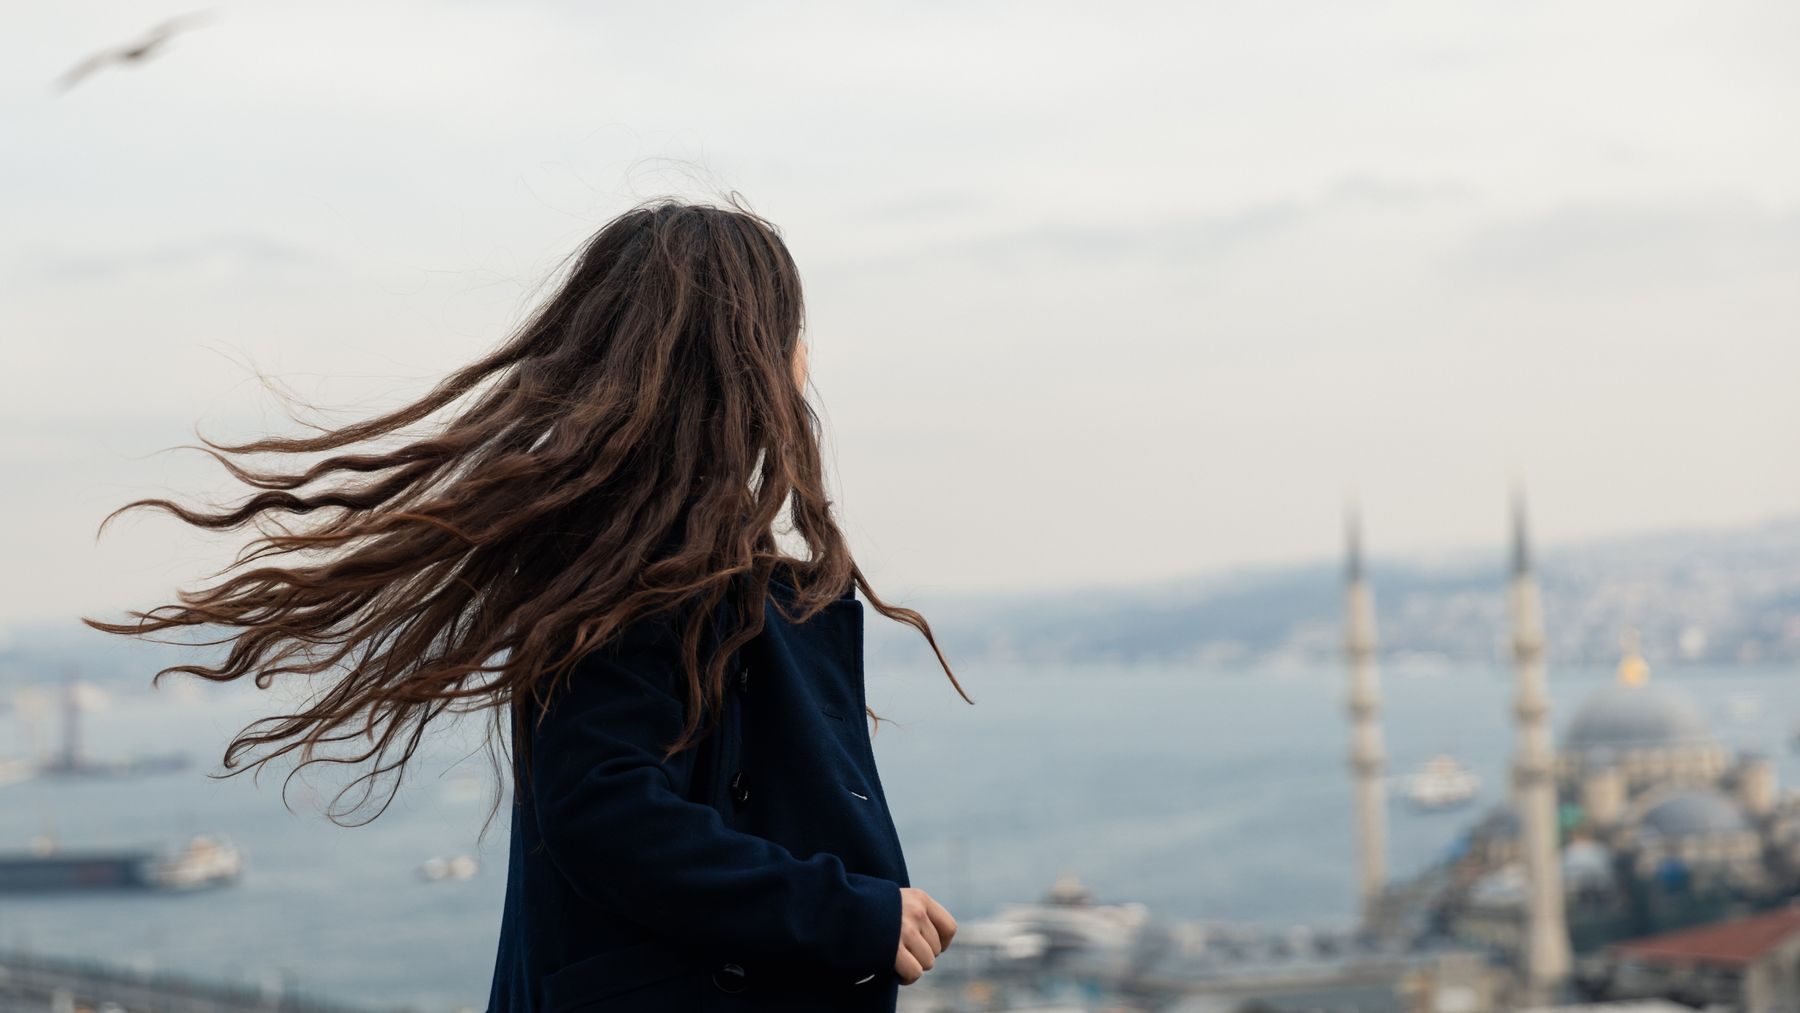 Young woman looking out over Istanbul, the wind whipping her hair.